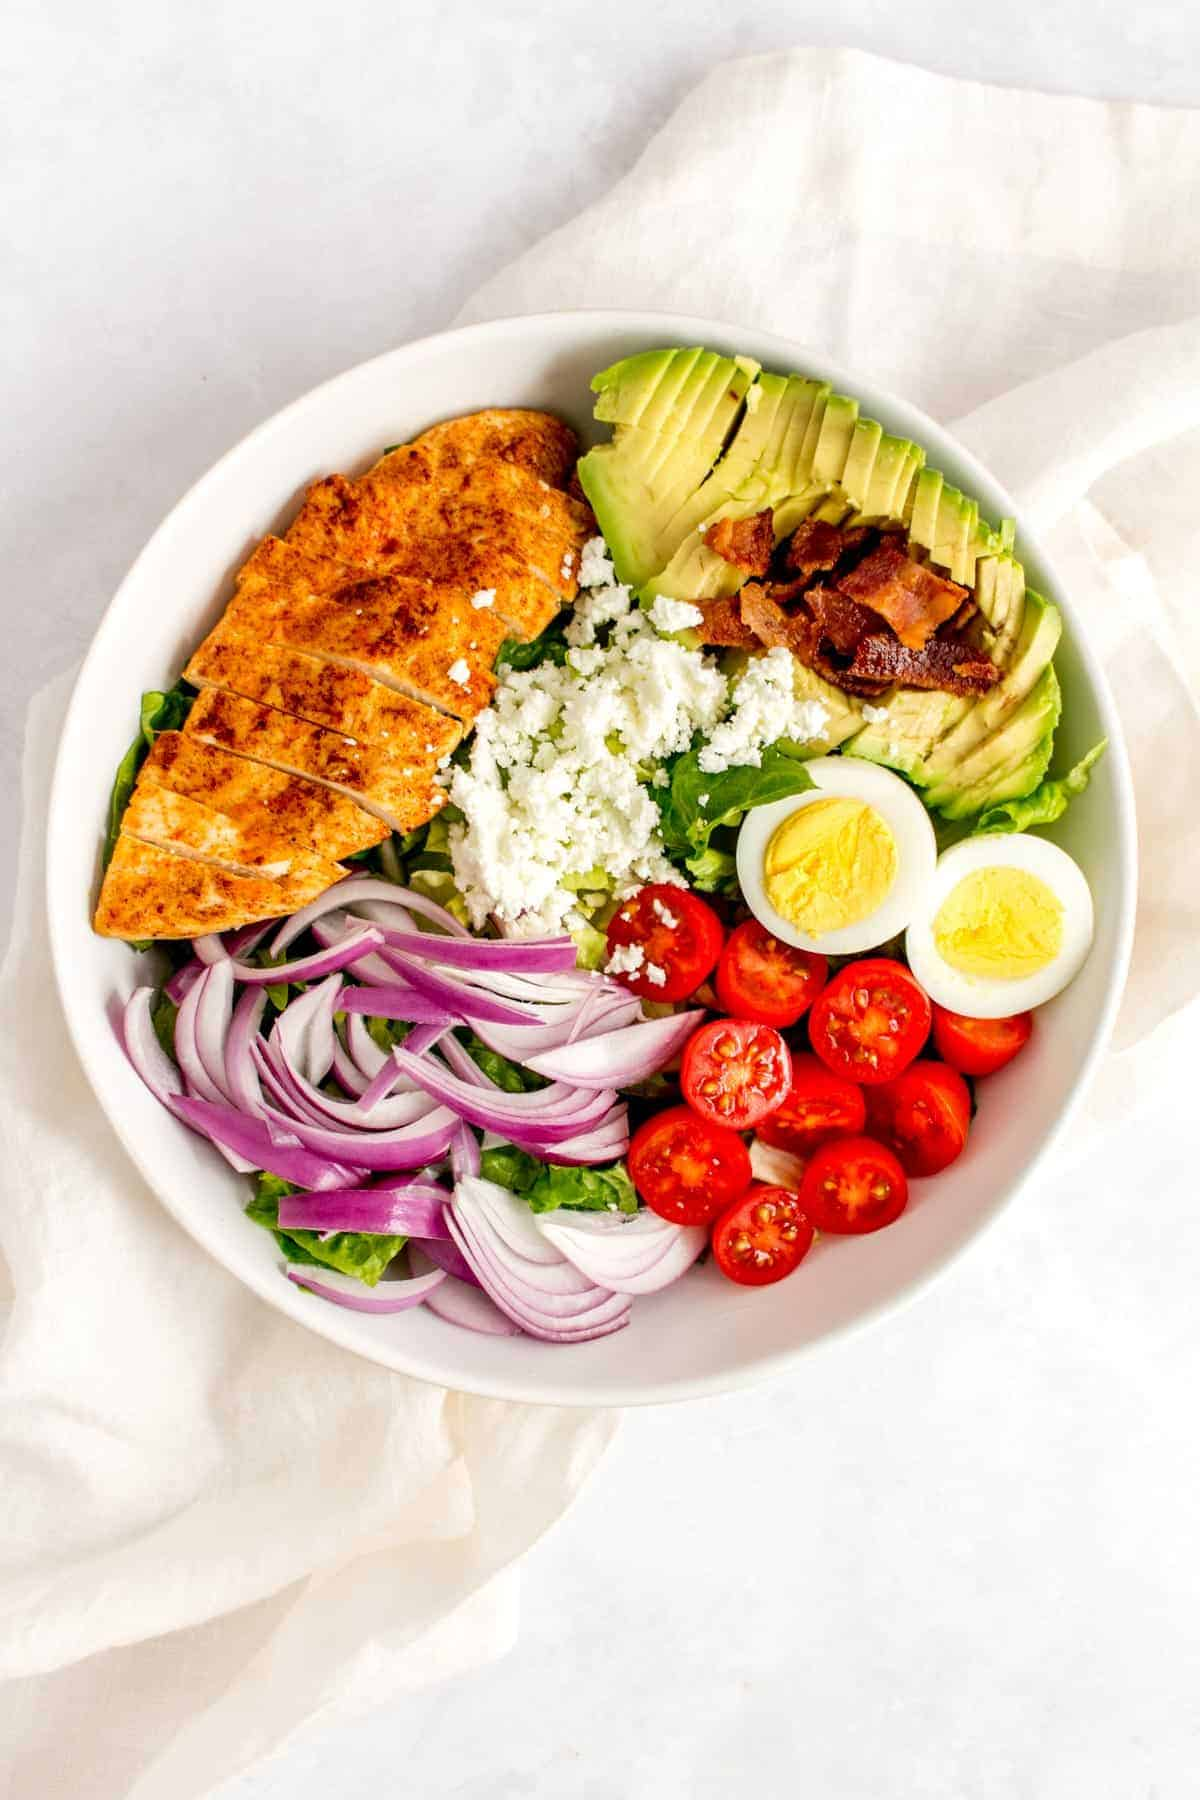 Overhead view of a bowl of chicken cobb salad.